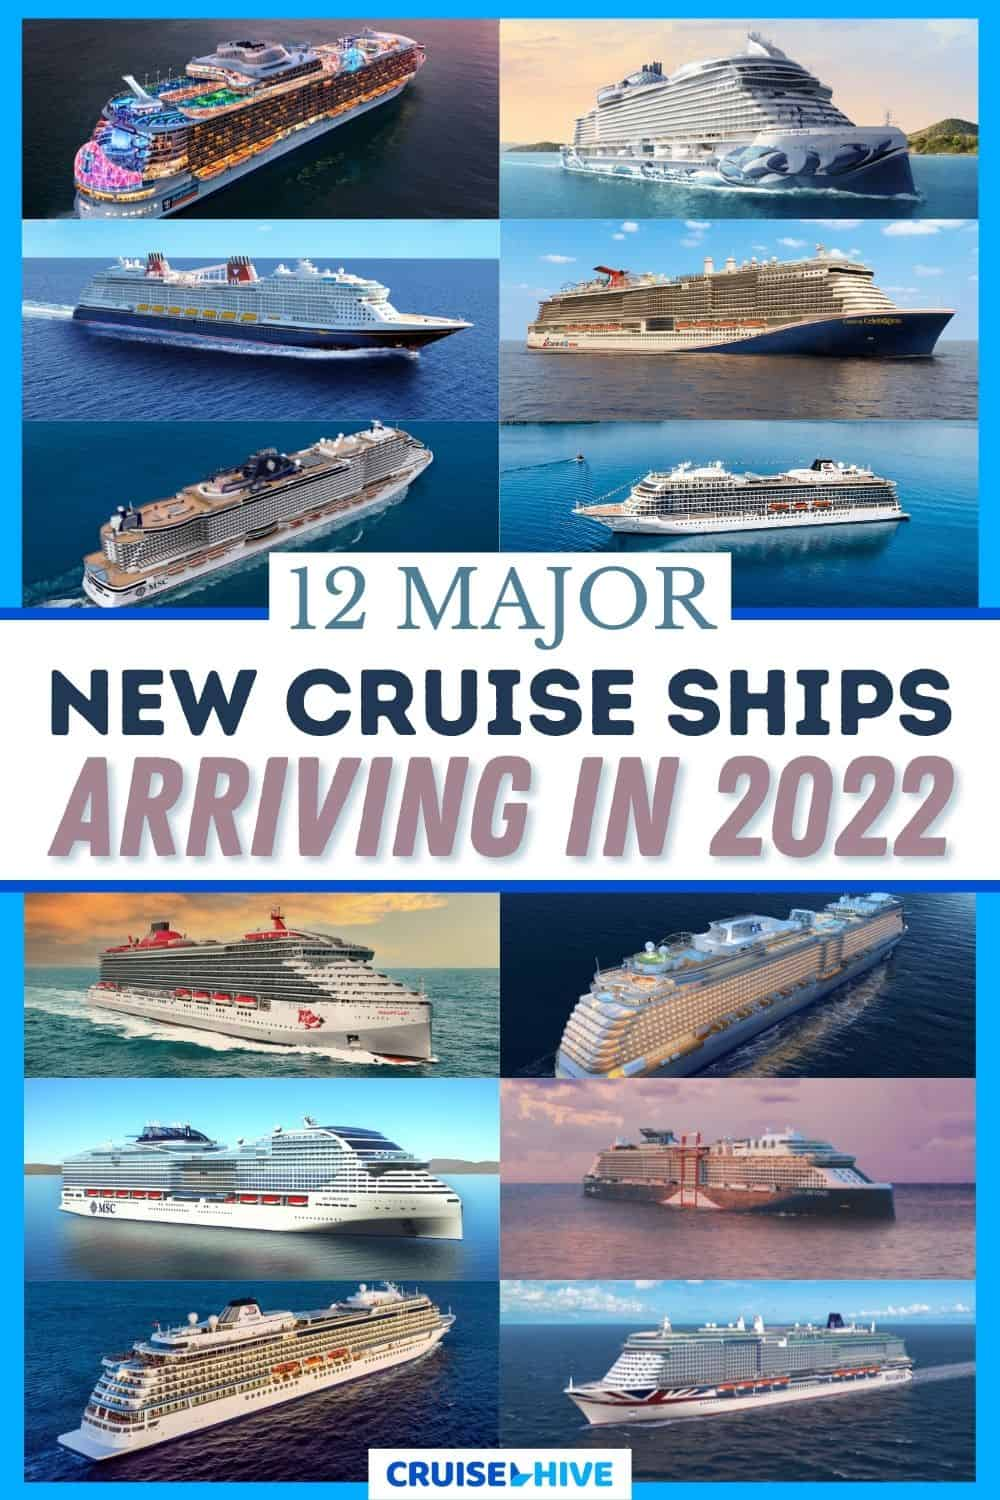 12 Major New Cruise Ships Arriving in 2022